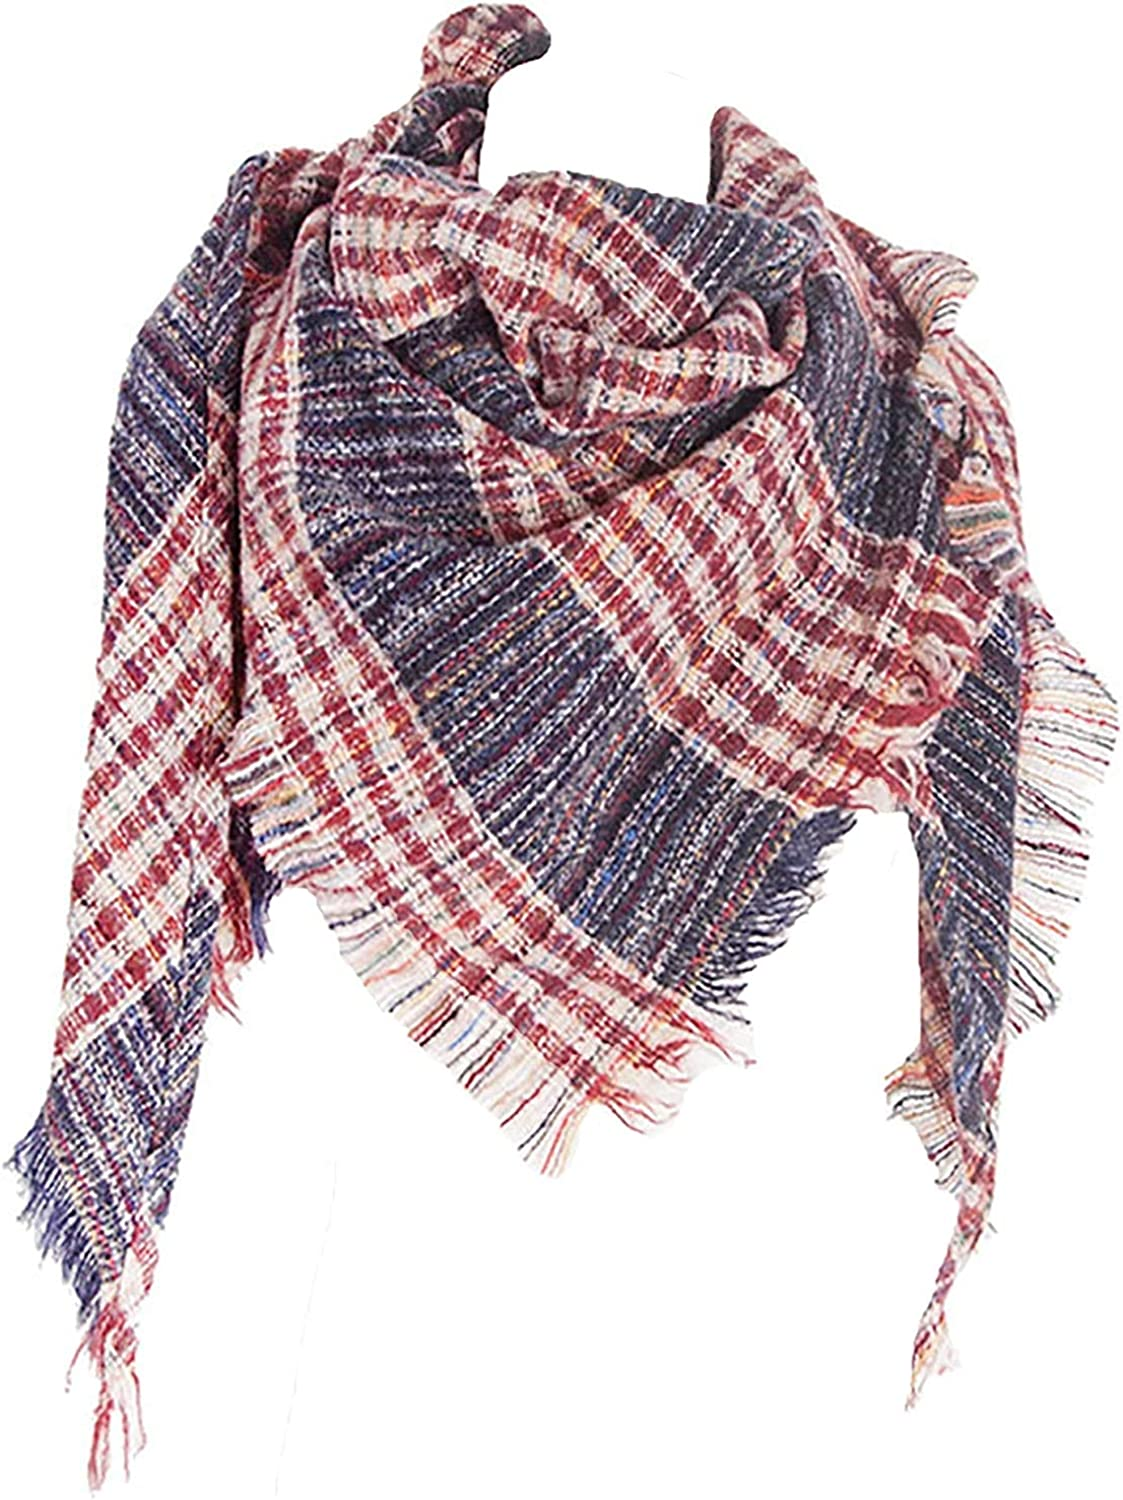 Neck Warmer Cashmere Scarf Ladies Fashion Scarf MKLP Tassel Scarf Winter Ladies Scarf Large Warm Shawl Plaid Scarf Large Shawl Keep Warm and Prevent Cold For Women